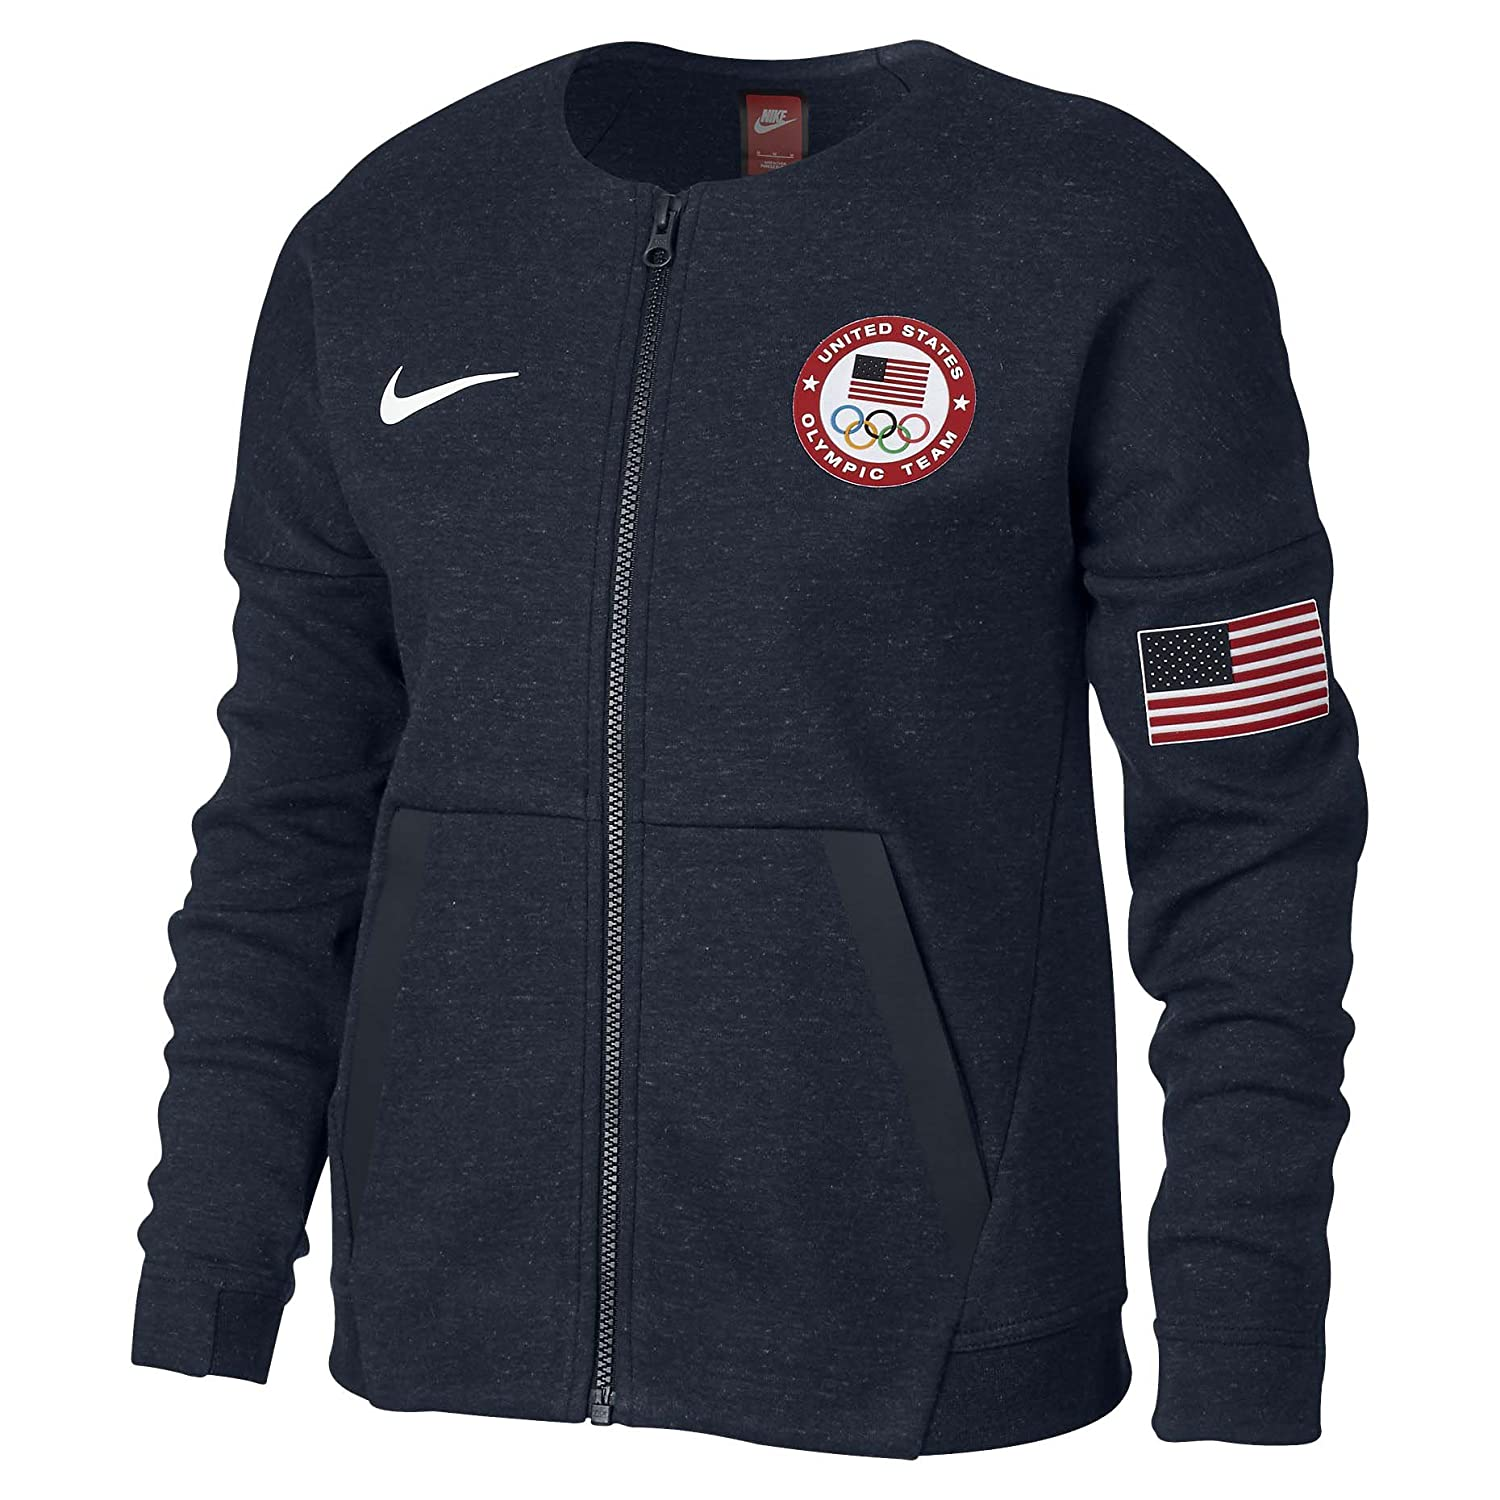 Nike Womens Team USA 2016 Authentic Olympics Tech Fleece Red White ...